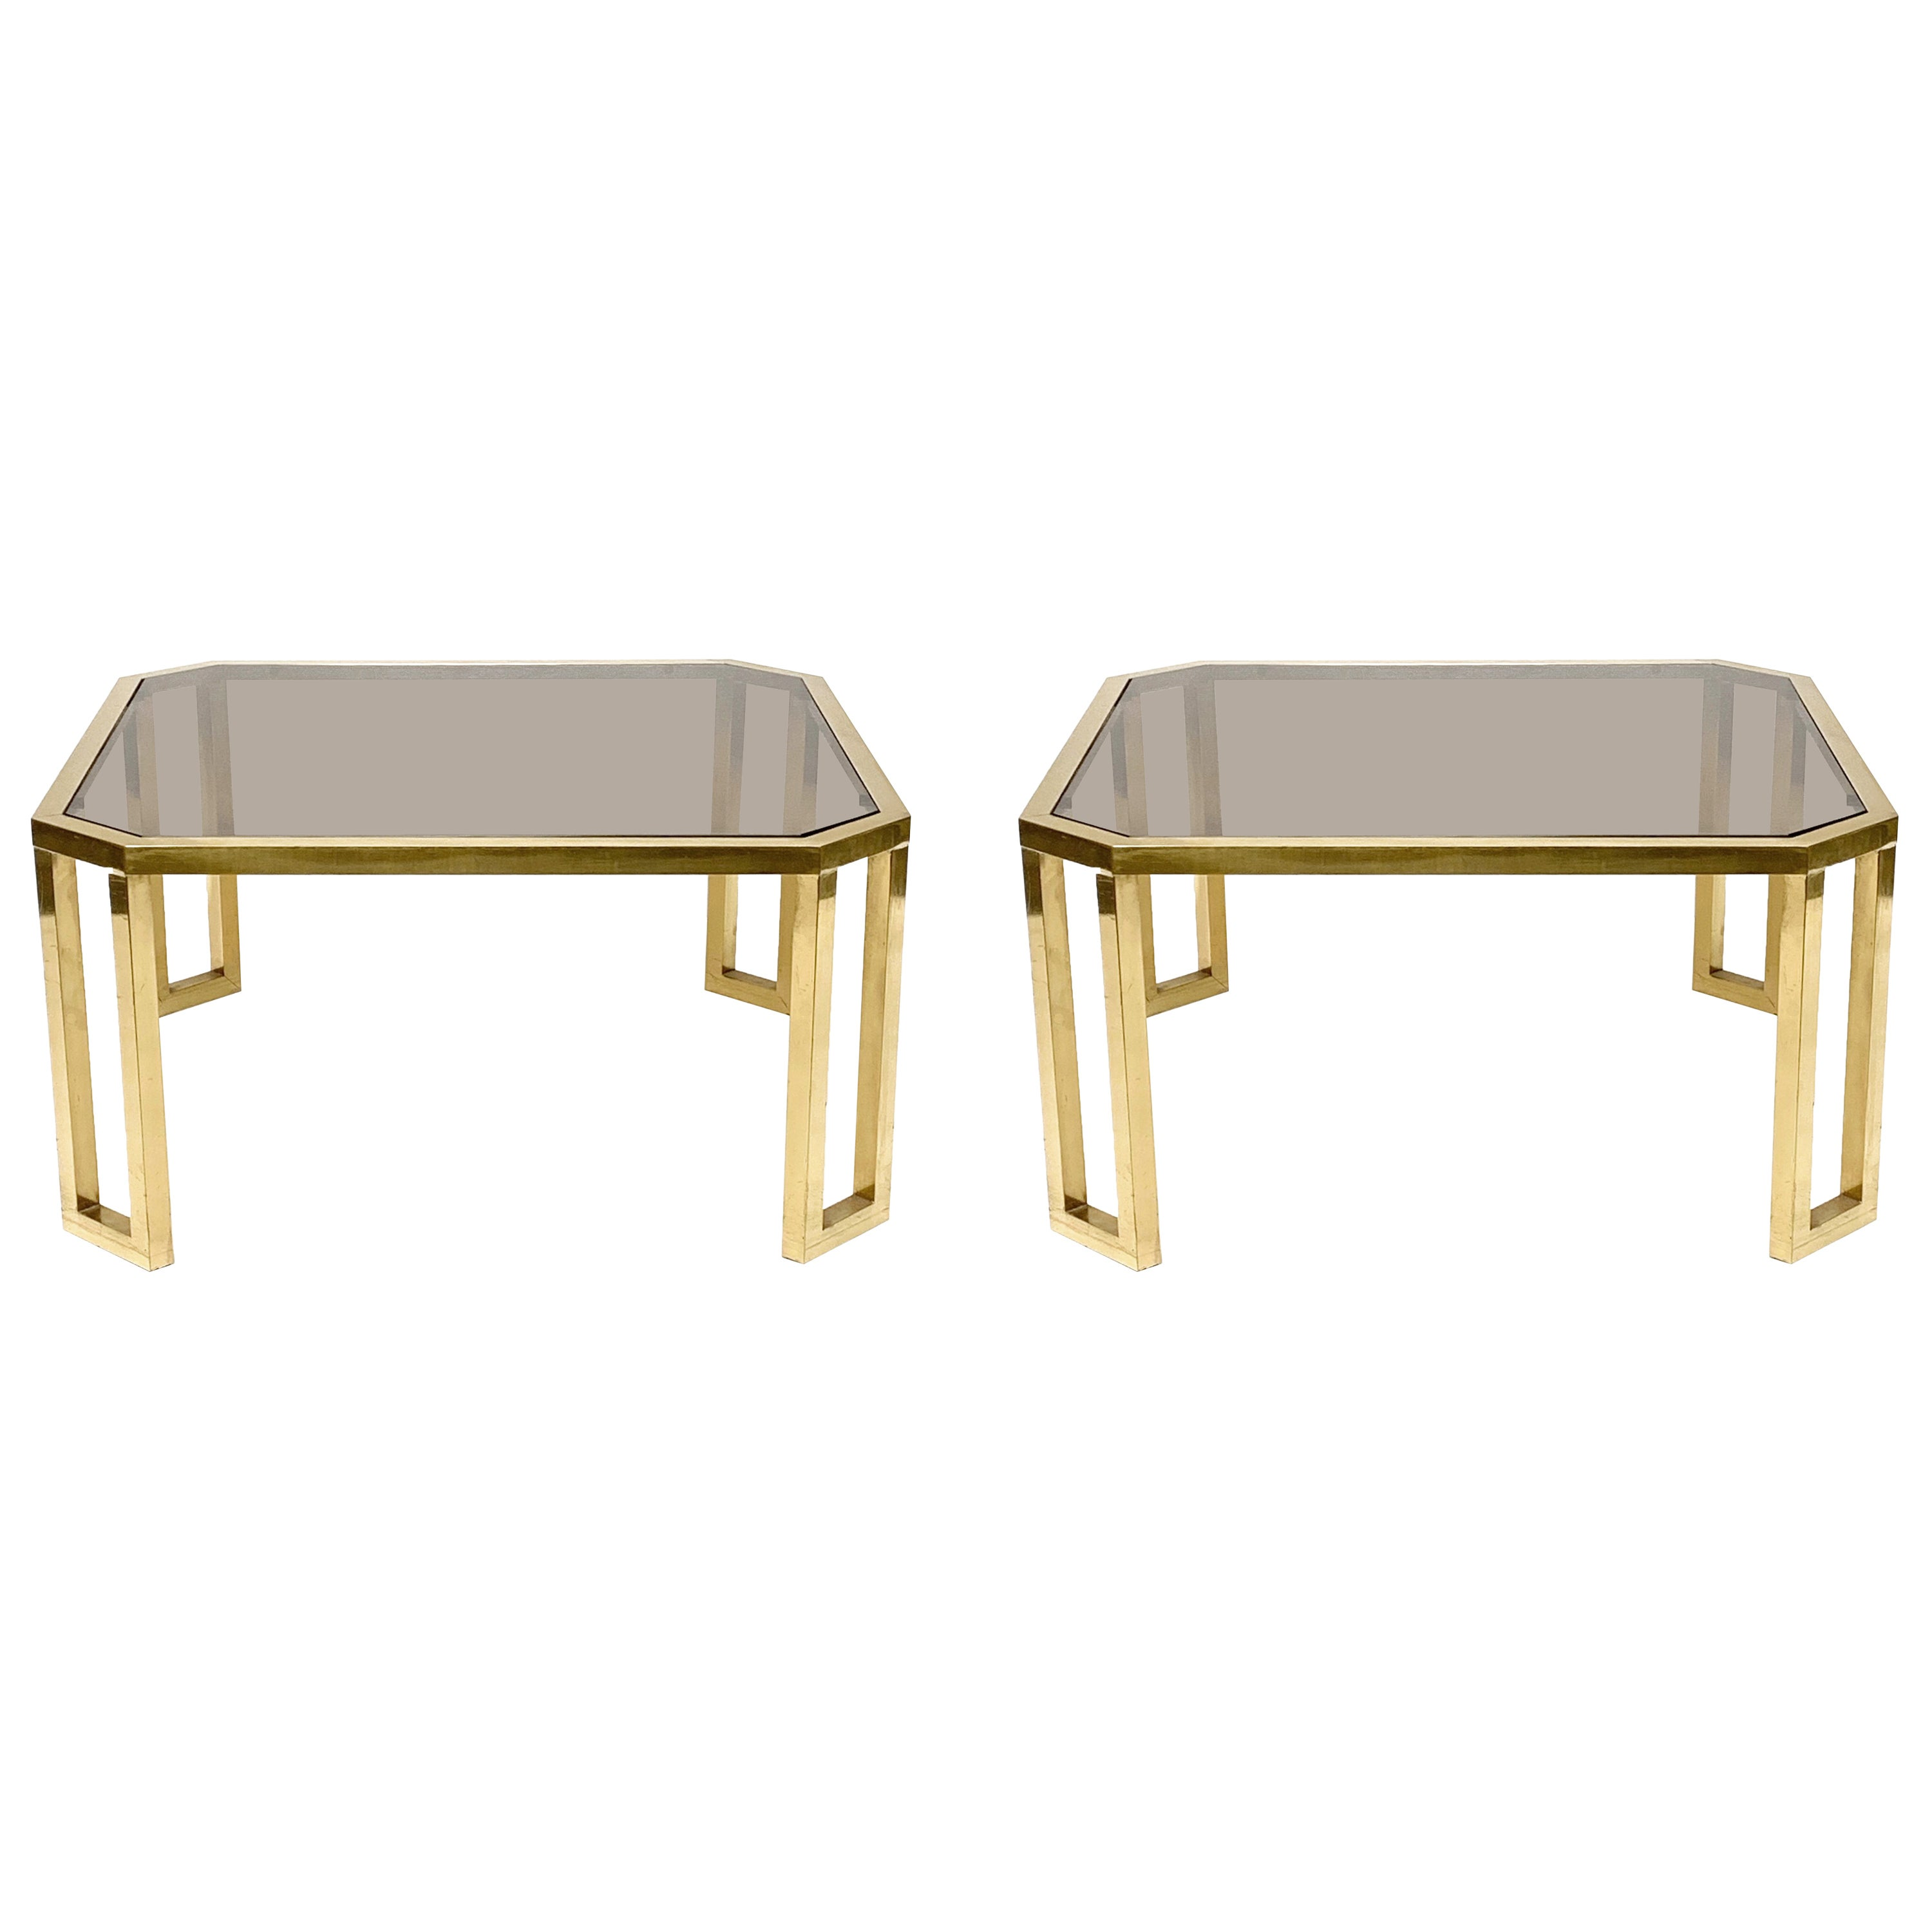 Maison Jansen Octagonal Tables in Brass and Glass, France, 1970s Coffee Tables